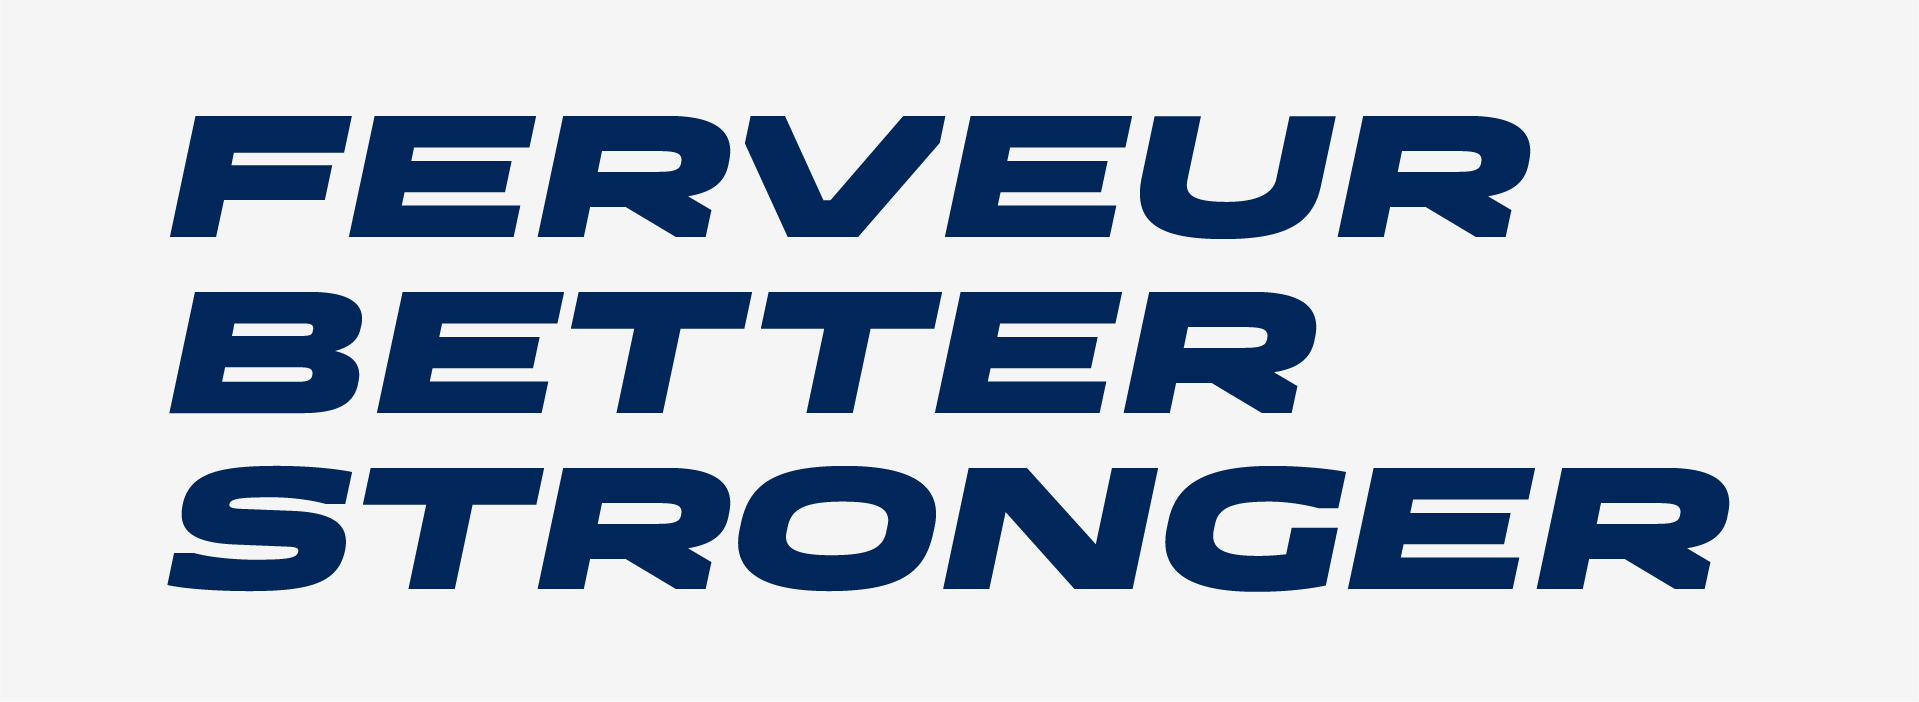 Ferveur_better_stronger